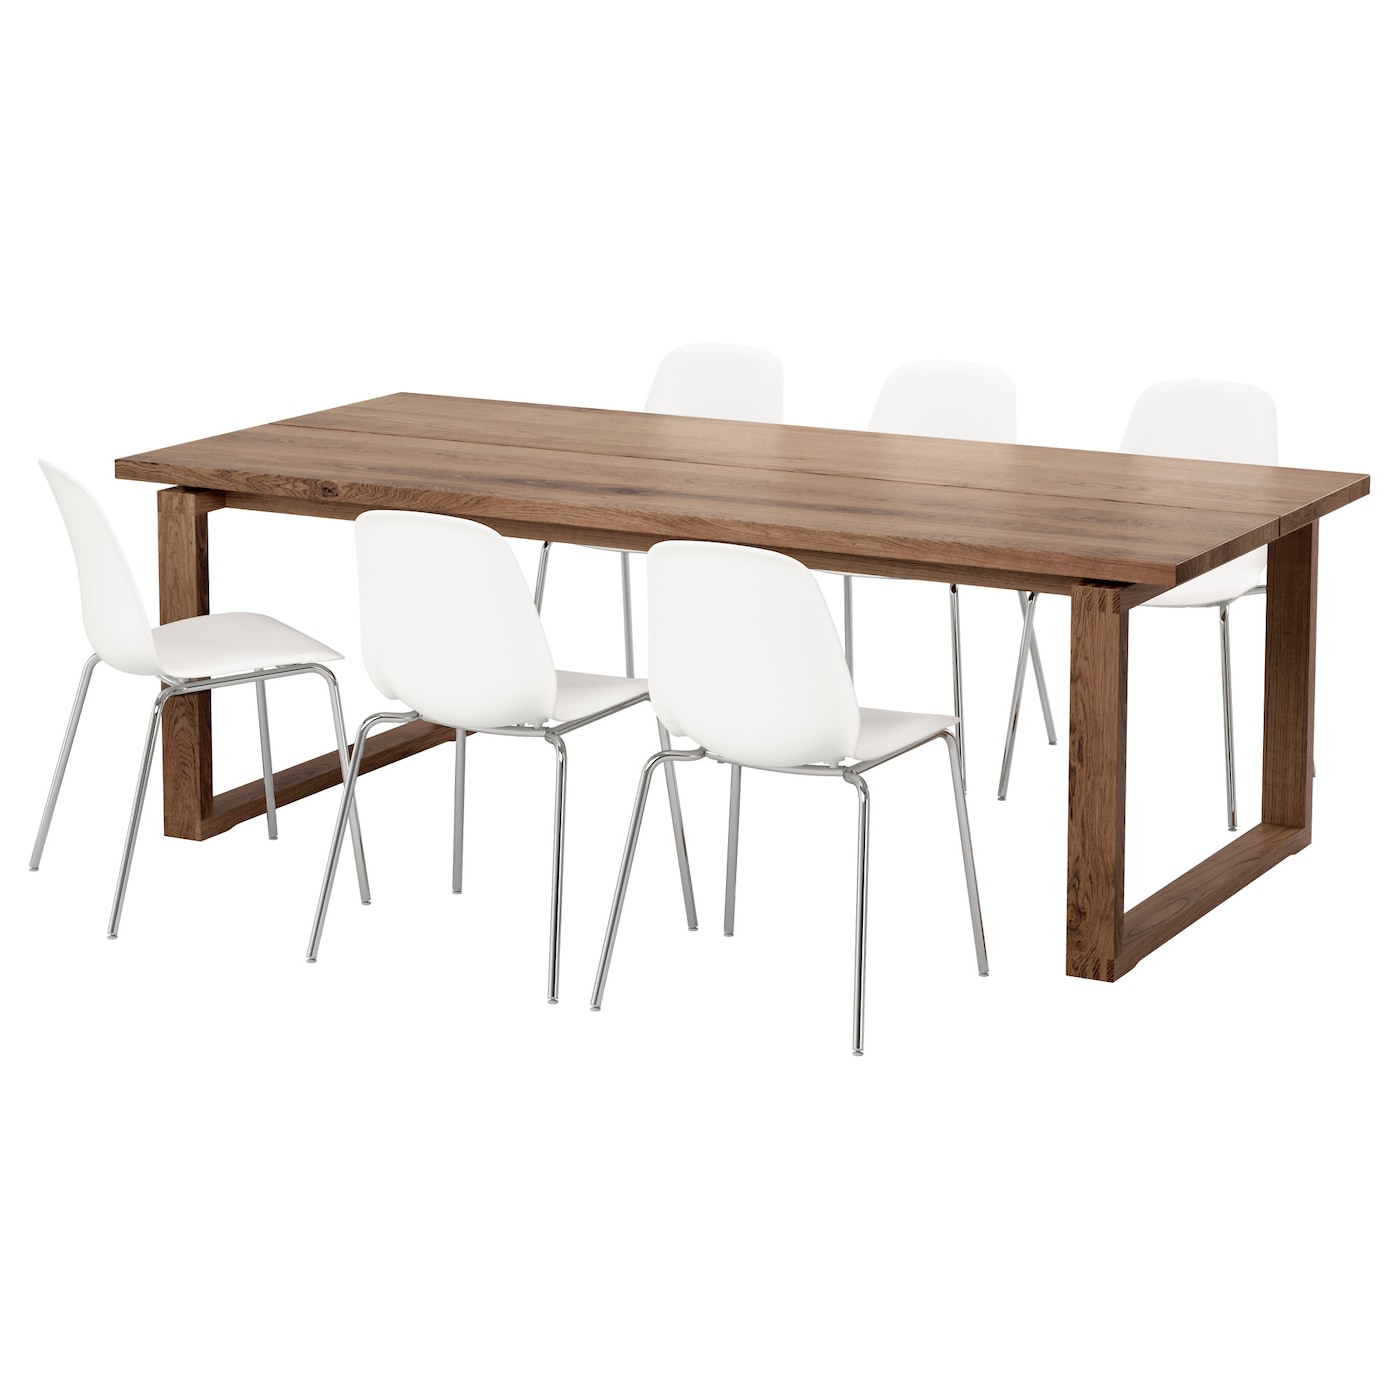 Leifarne M Rbyl Nga Table And 6 Chairs Brown White 220x100